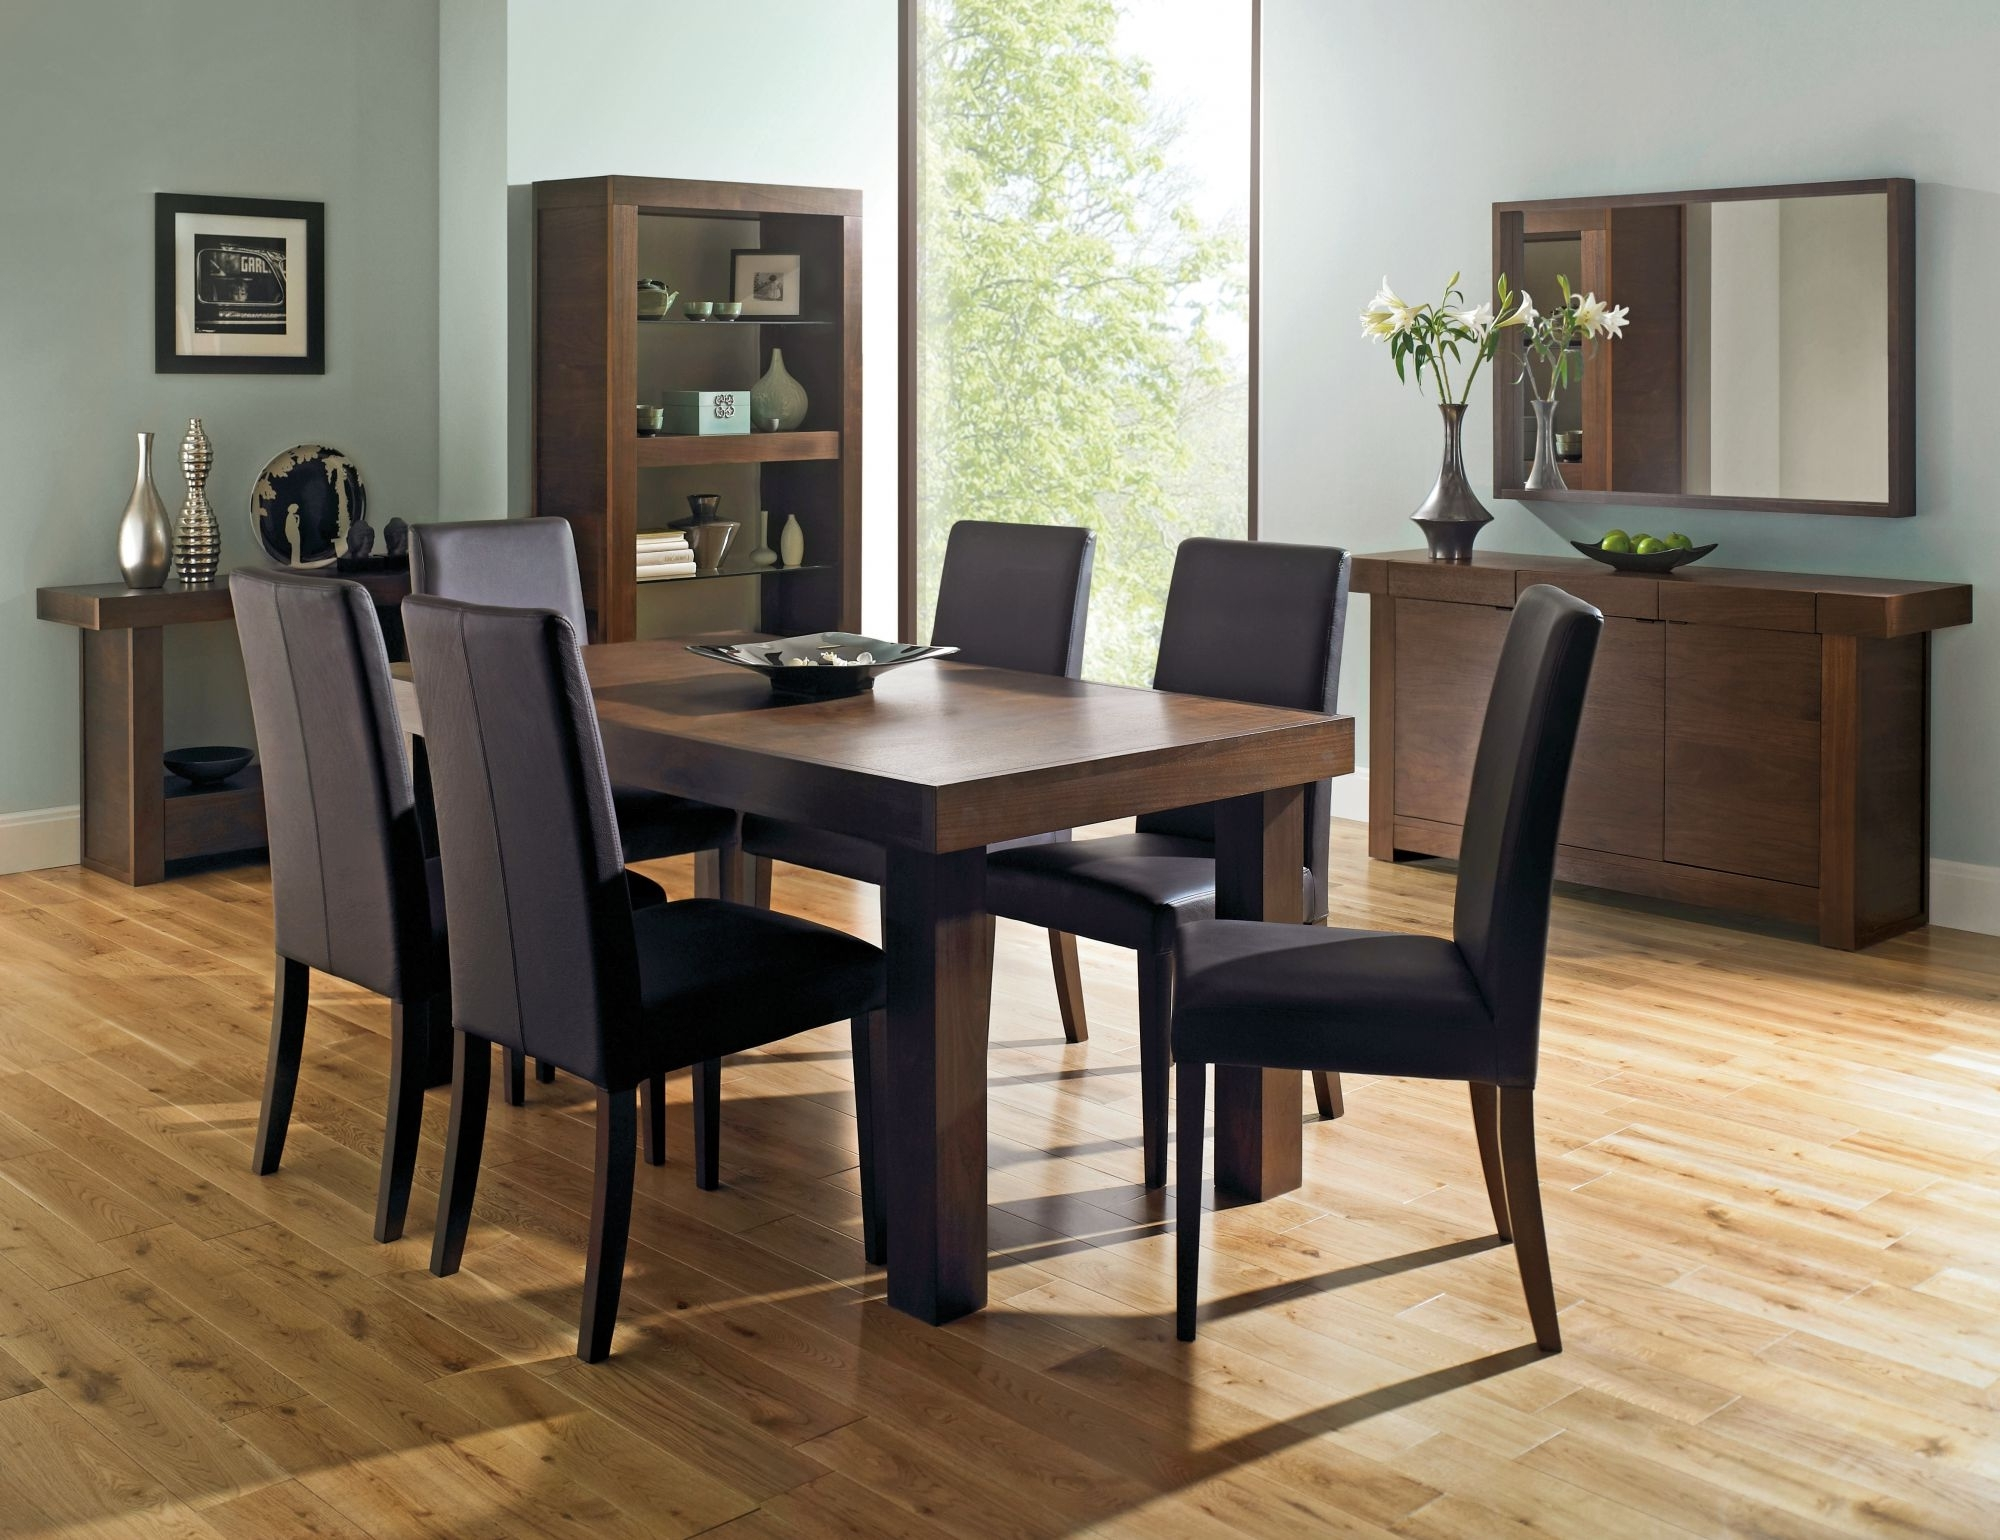 Preferred Round 6 Person Dining Tables Throughout Akita 6 Seater Panel Dining Table – Large (View 25 of 25)